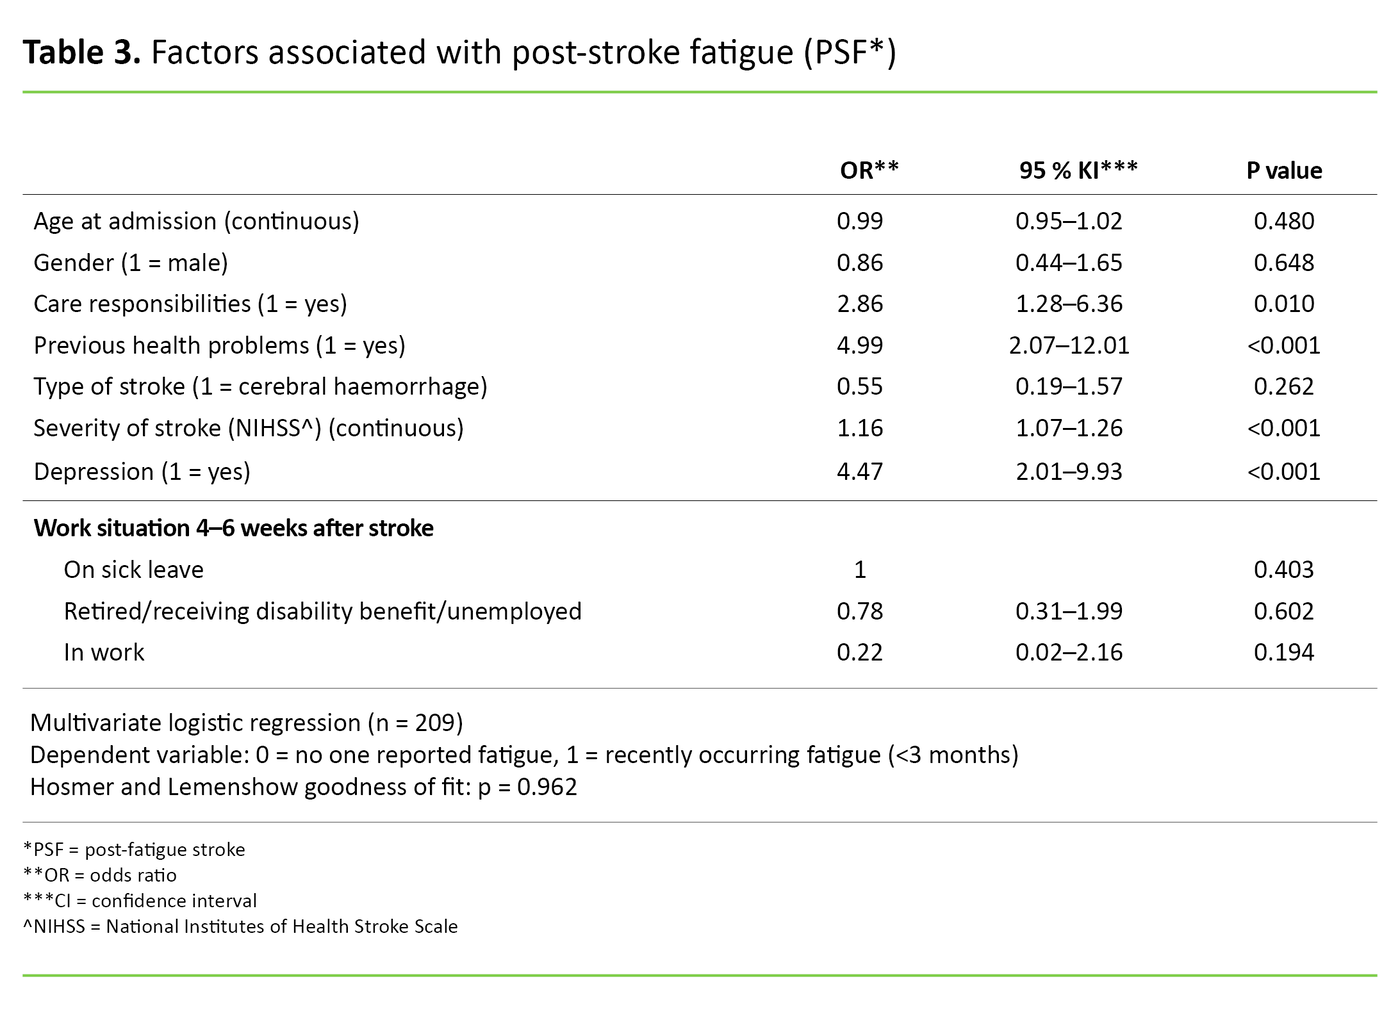 Table 3. Factors associated with post-stroke fatigue (PSF*)